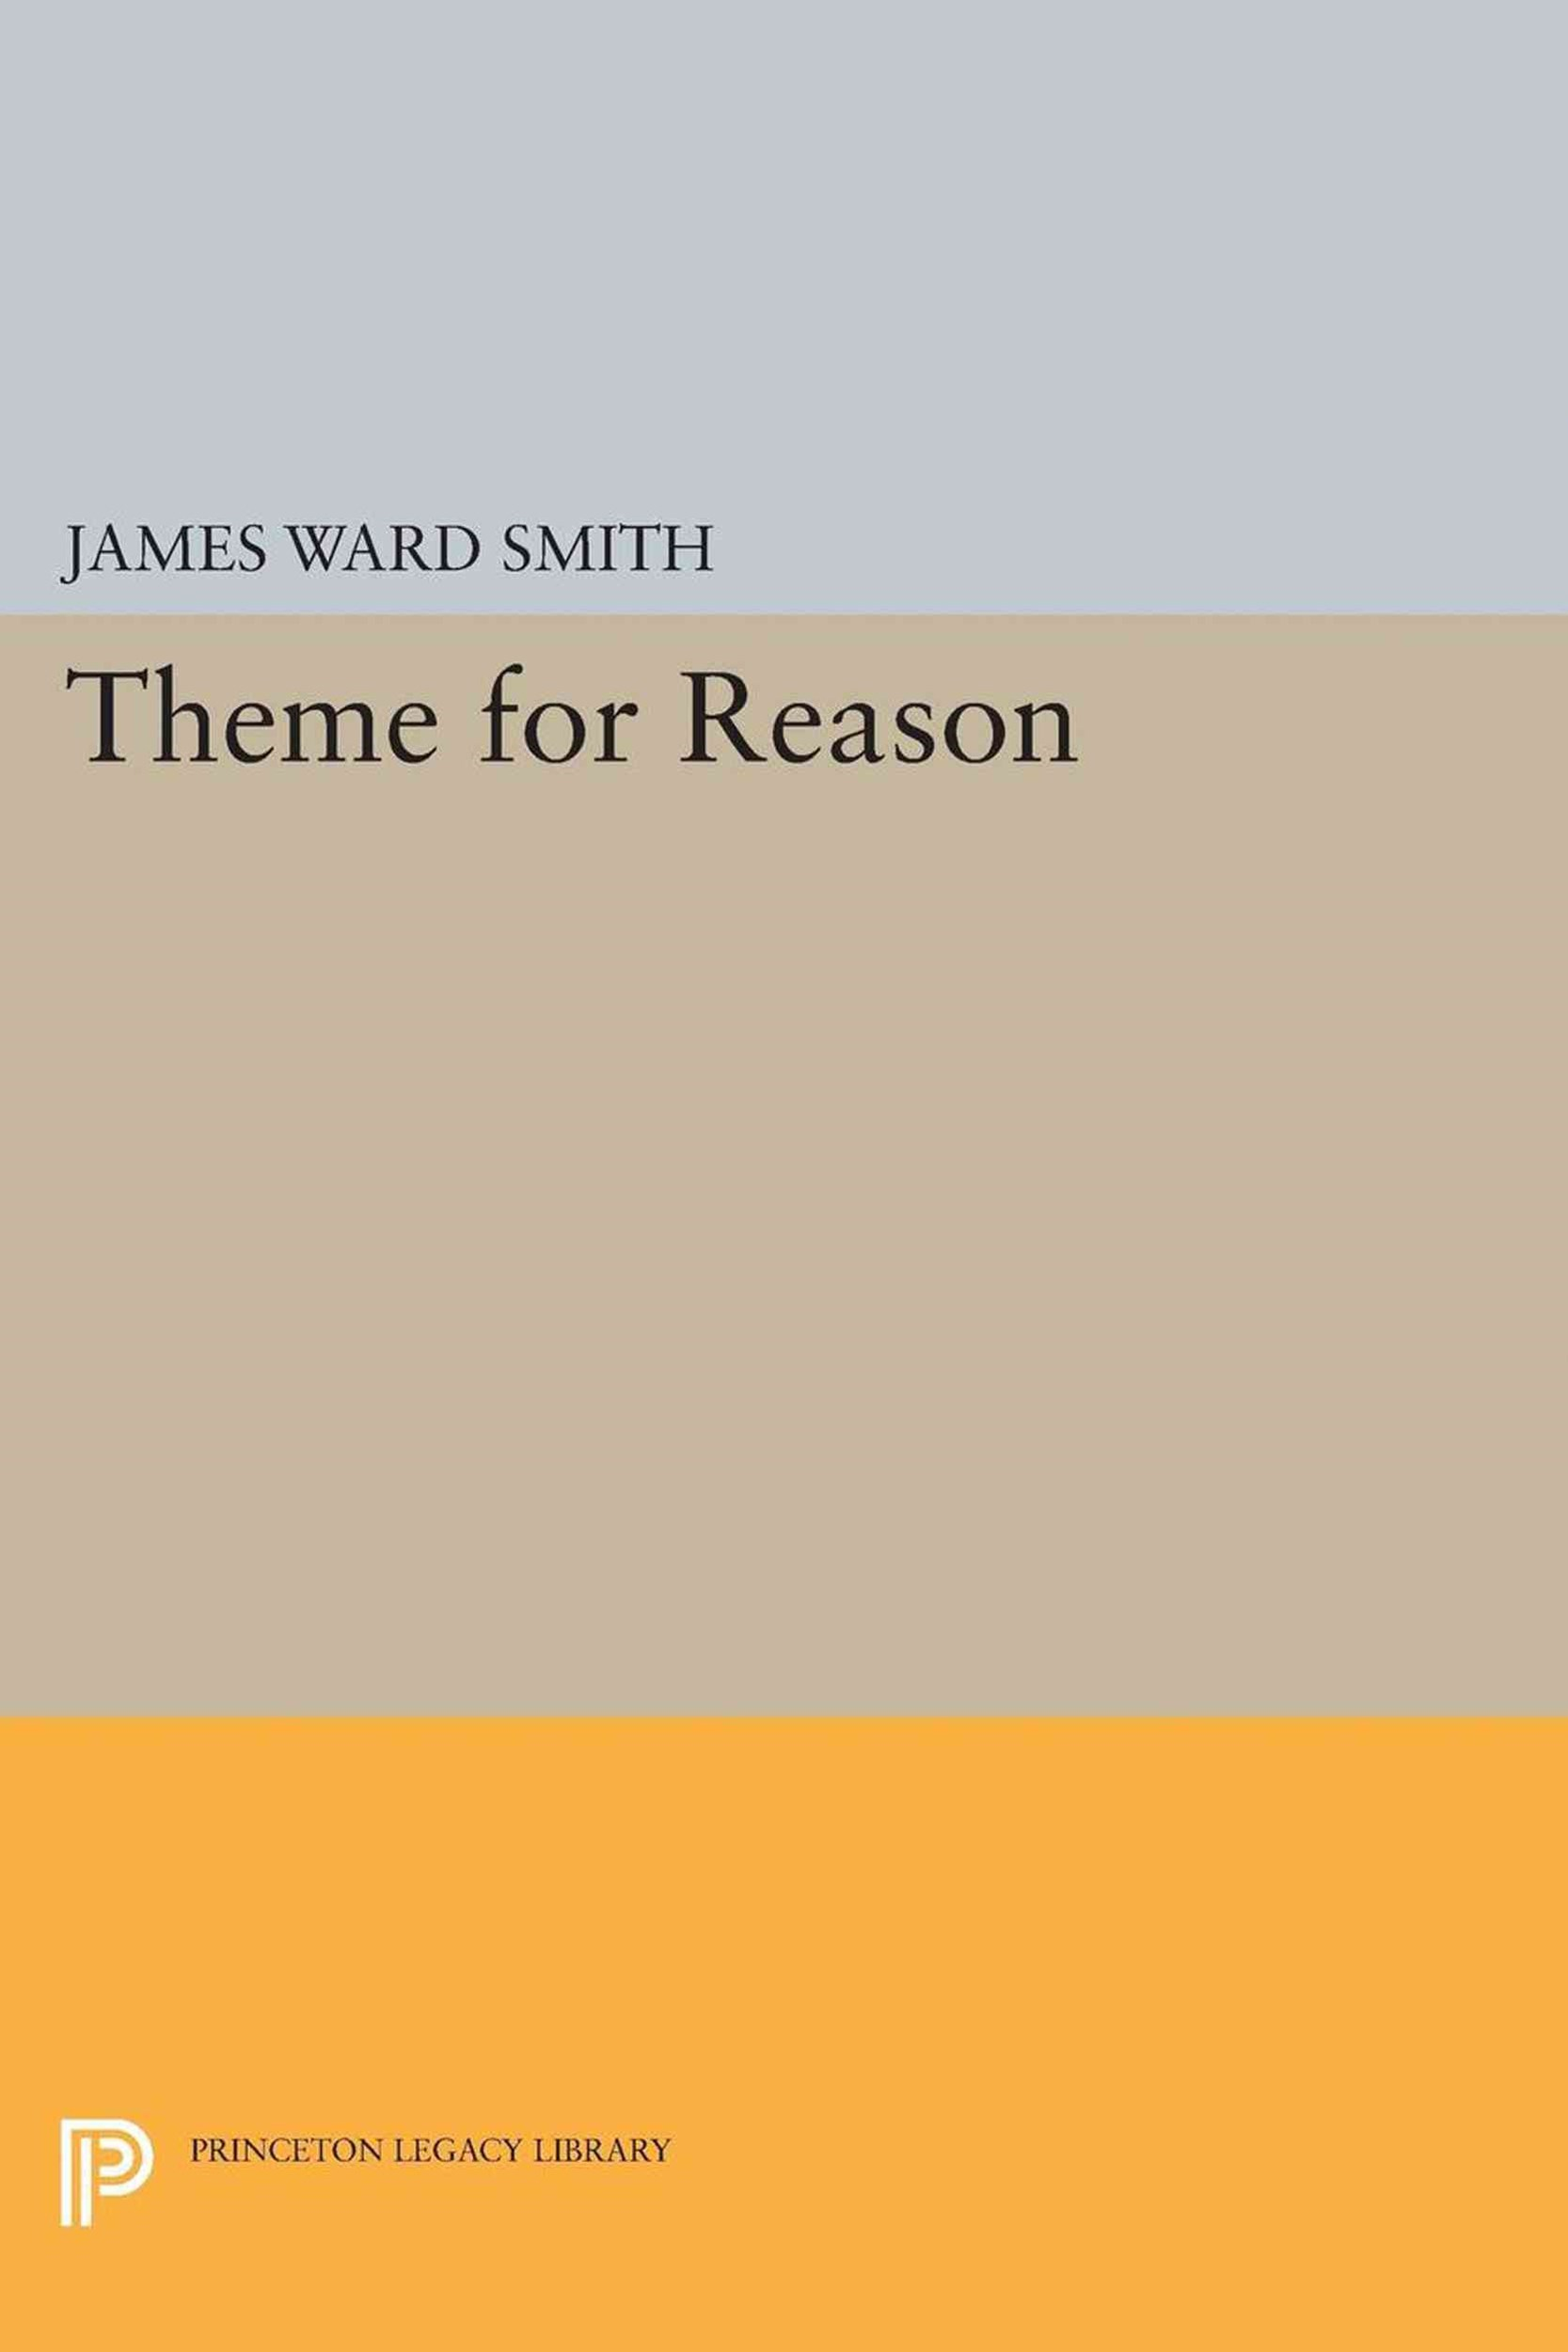 Theme for Reason